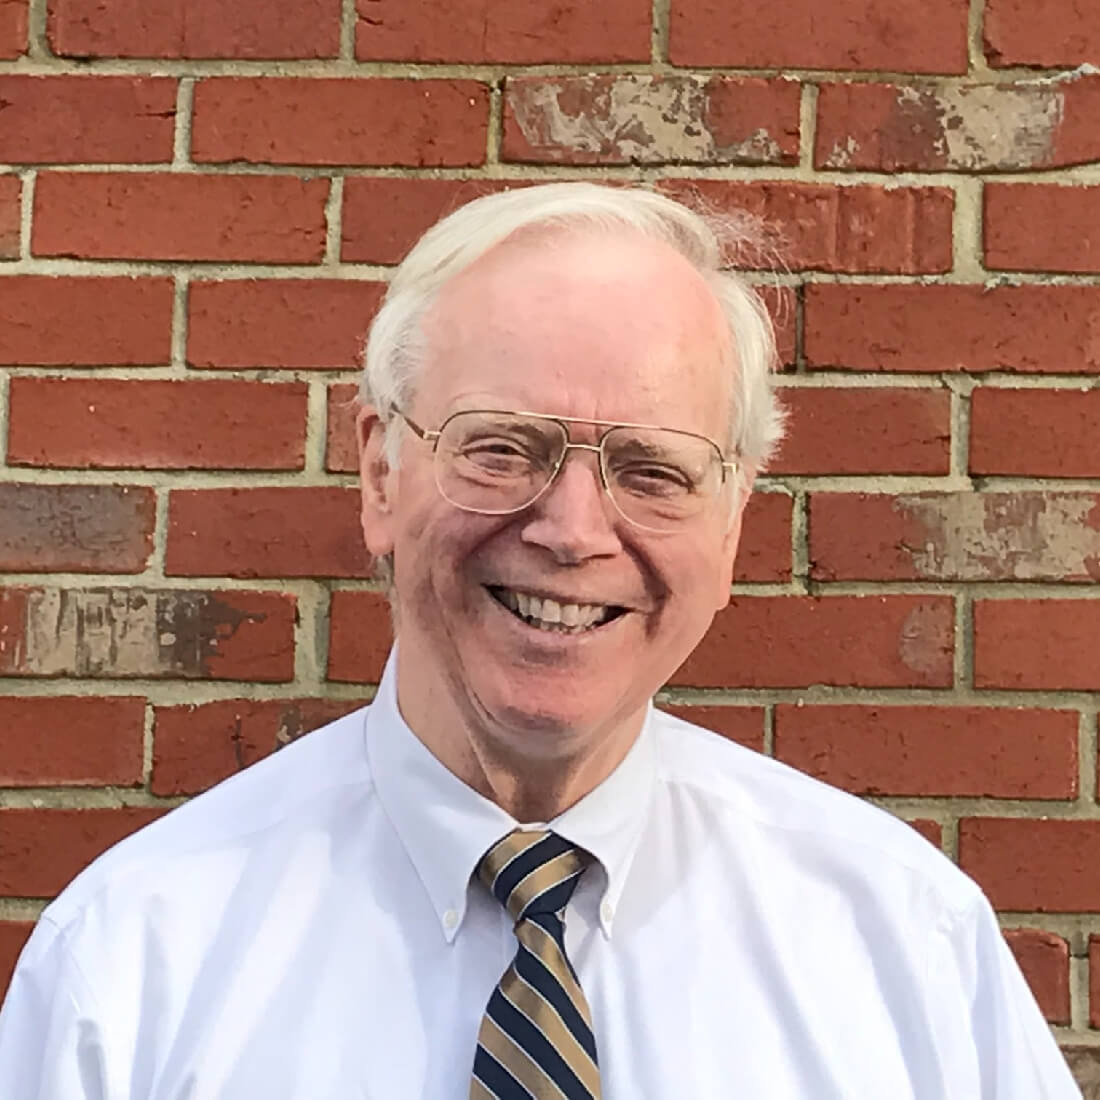 Ben Flanagan graduated from Mercer University School of Pharmacy in 1973. A native of Acworth he began to practice pharmacy at Lacey Drug Company in 1974. He is the Chairman of Acworth's Planning and Zoning board, and a recipient of the Lifetime Achievement award from Cobb Chamber of Commerce and the City of Acworth.